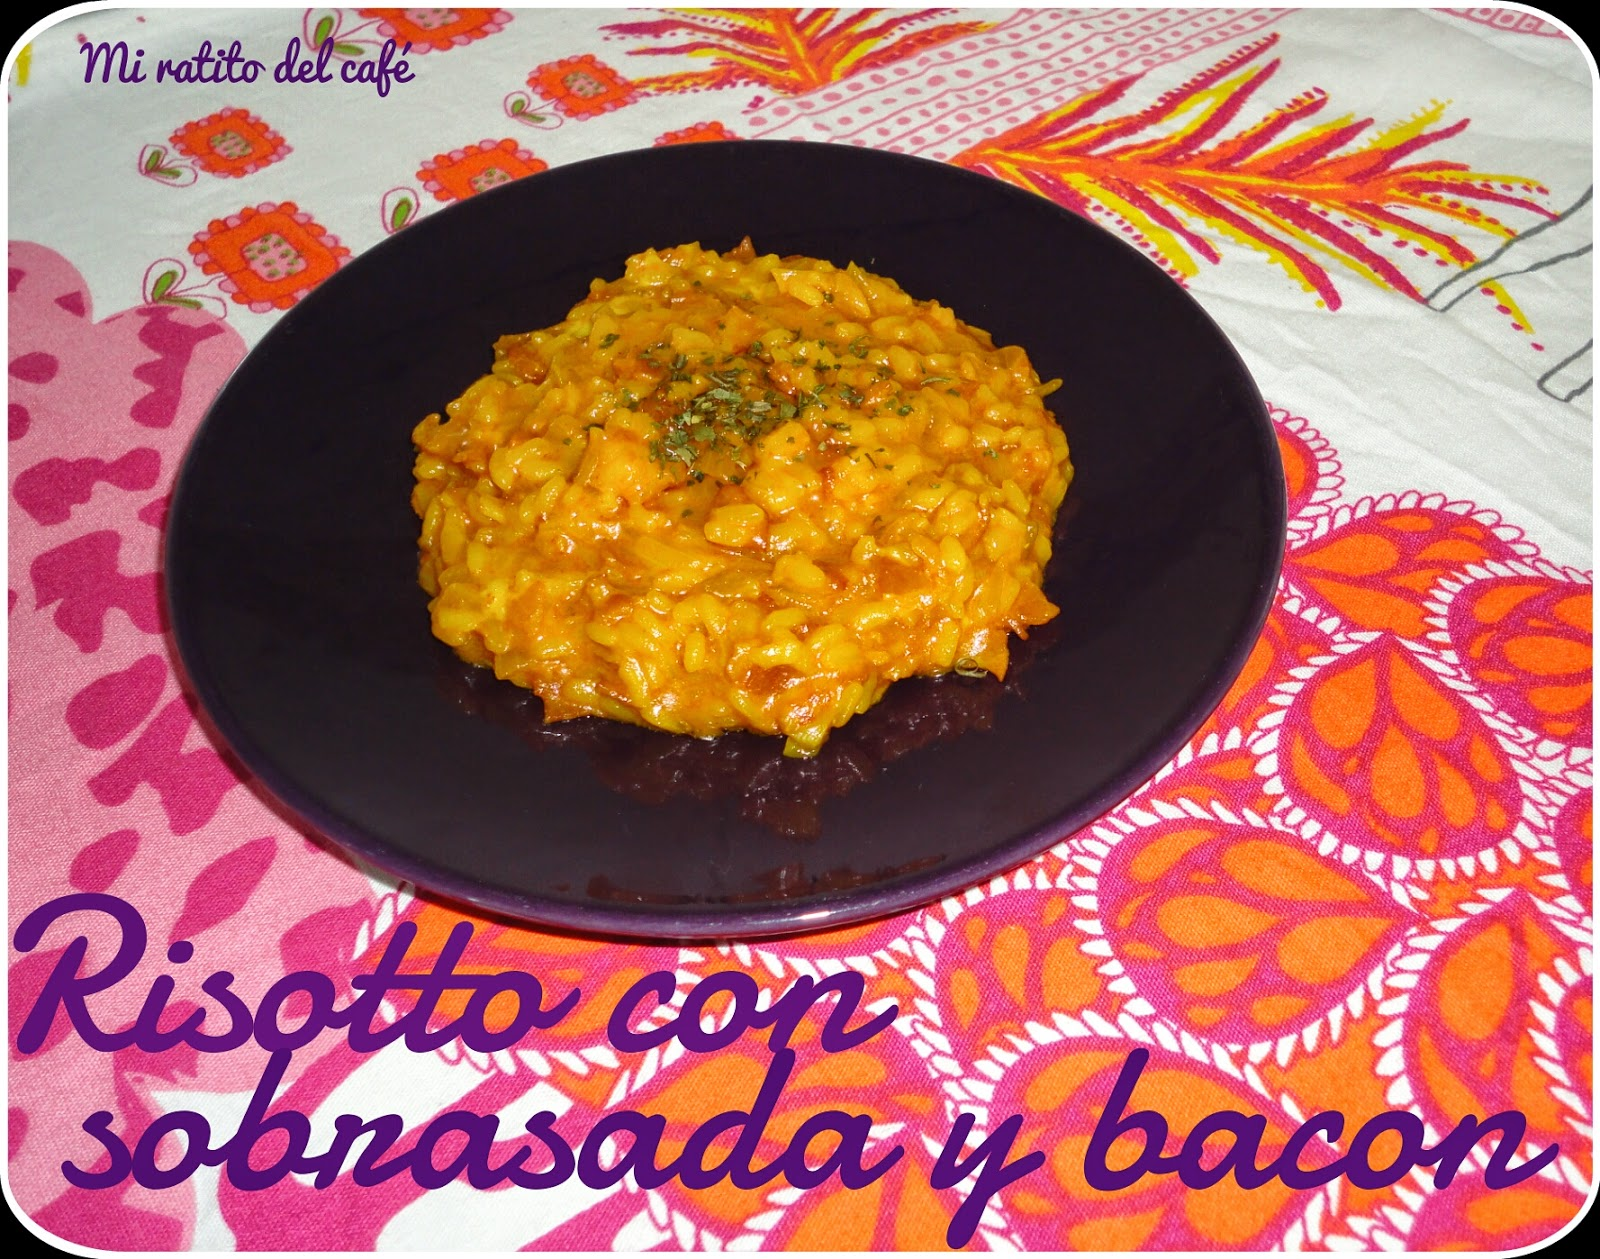 Risotto con sobrasada y bacon